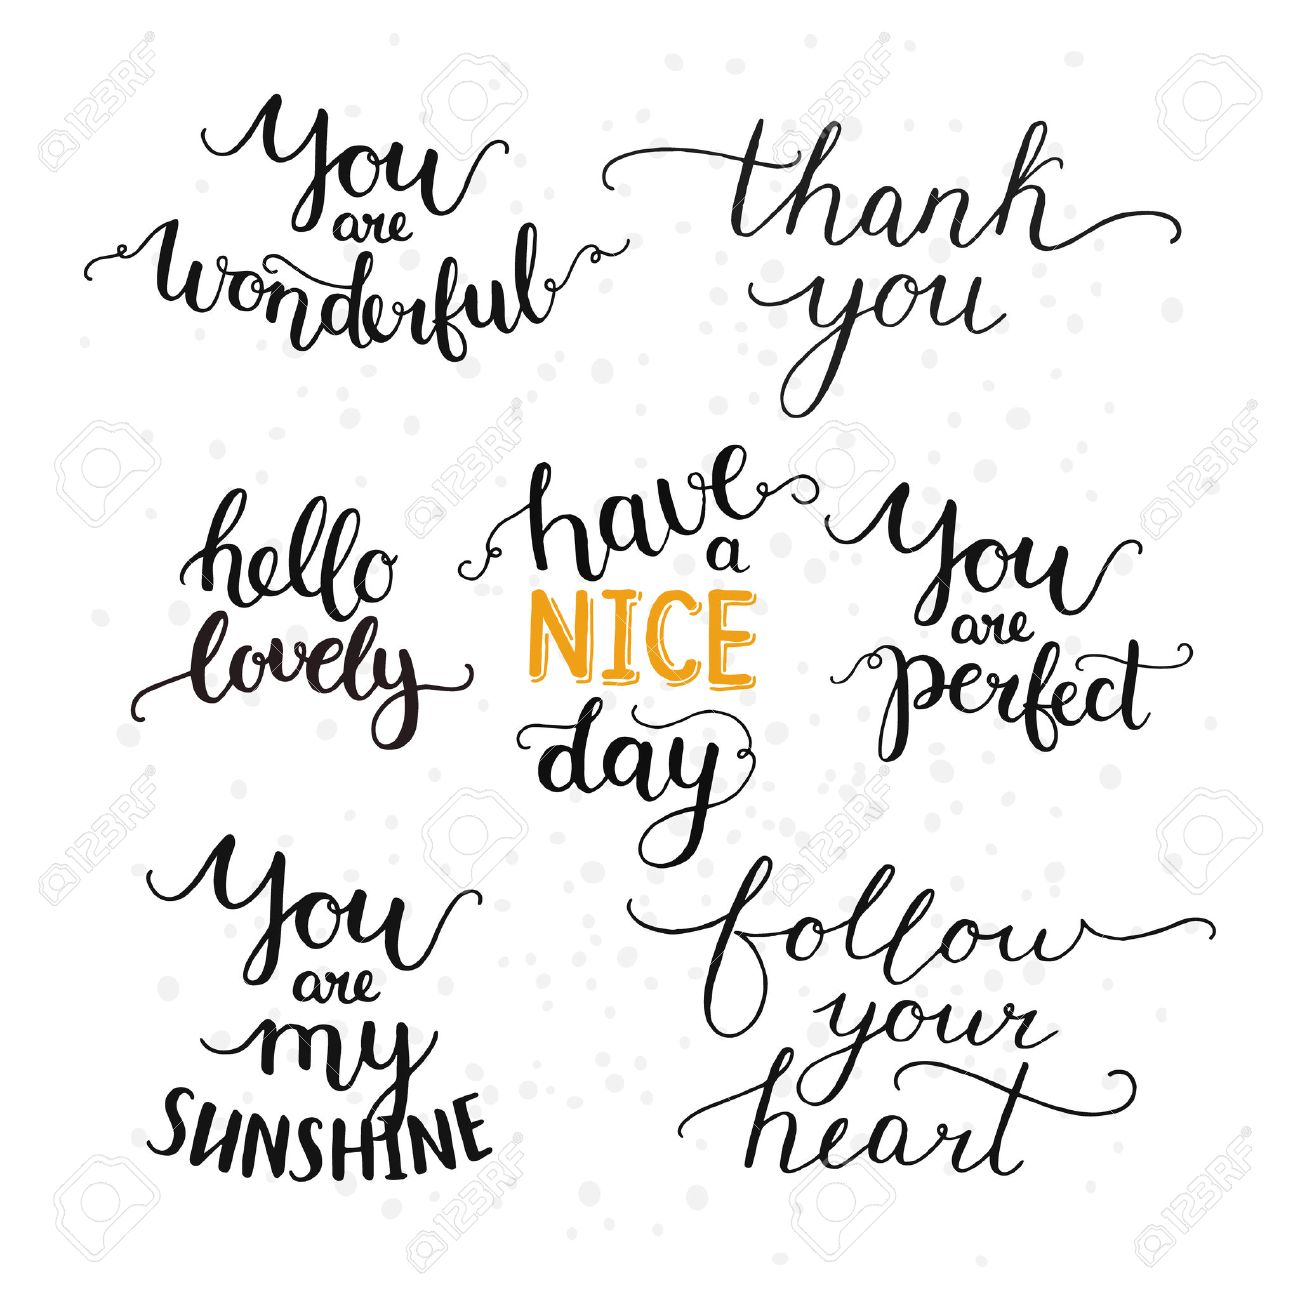 Charming Vector Photo Overlays, Hand Drawn Lettering Collection, Inspirational Quote.  Hello Lovely, Thank